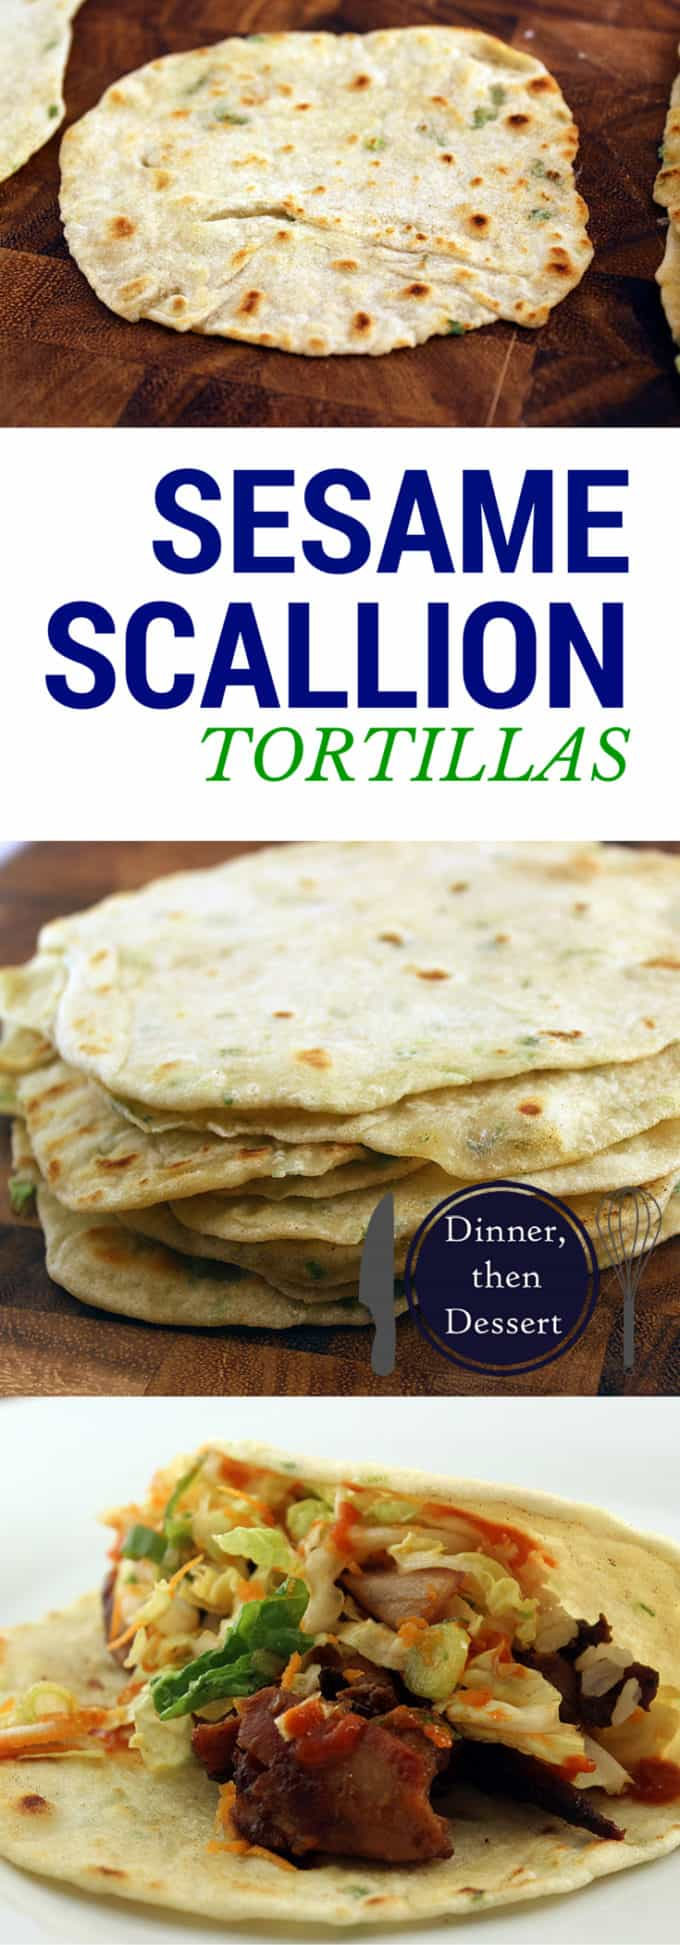 These Sesame Scallion Tortillas are easy to make and add a whole different layer of flavor to your dishes!